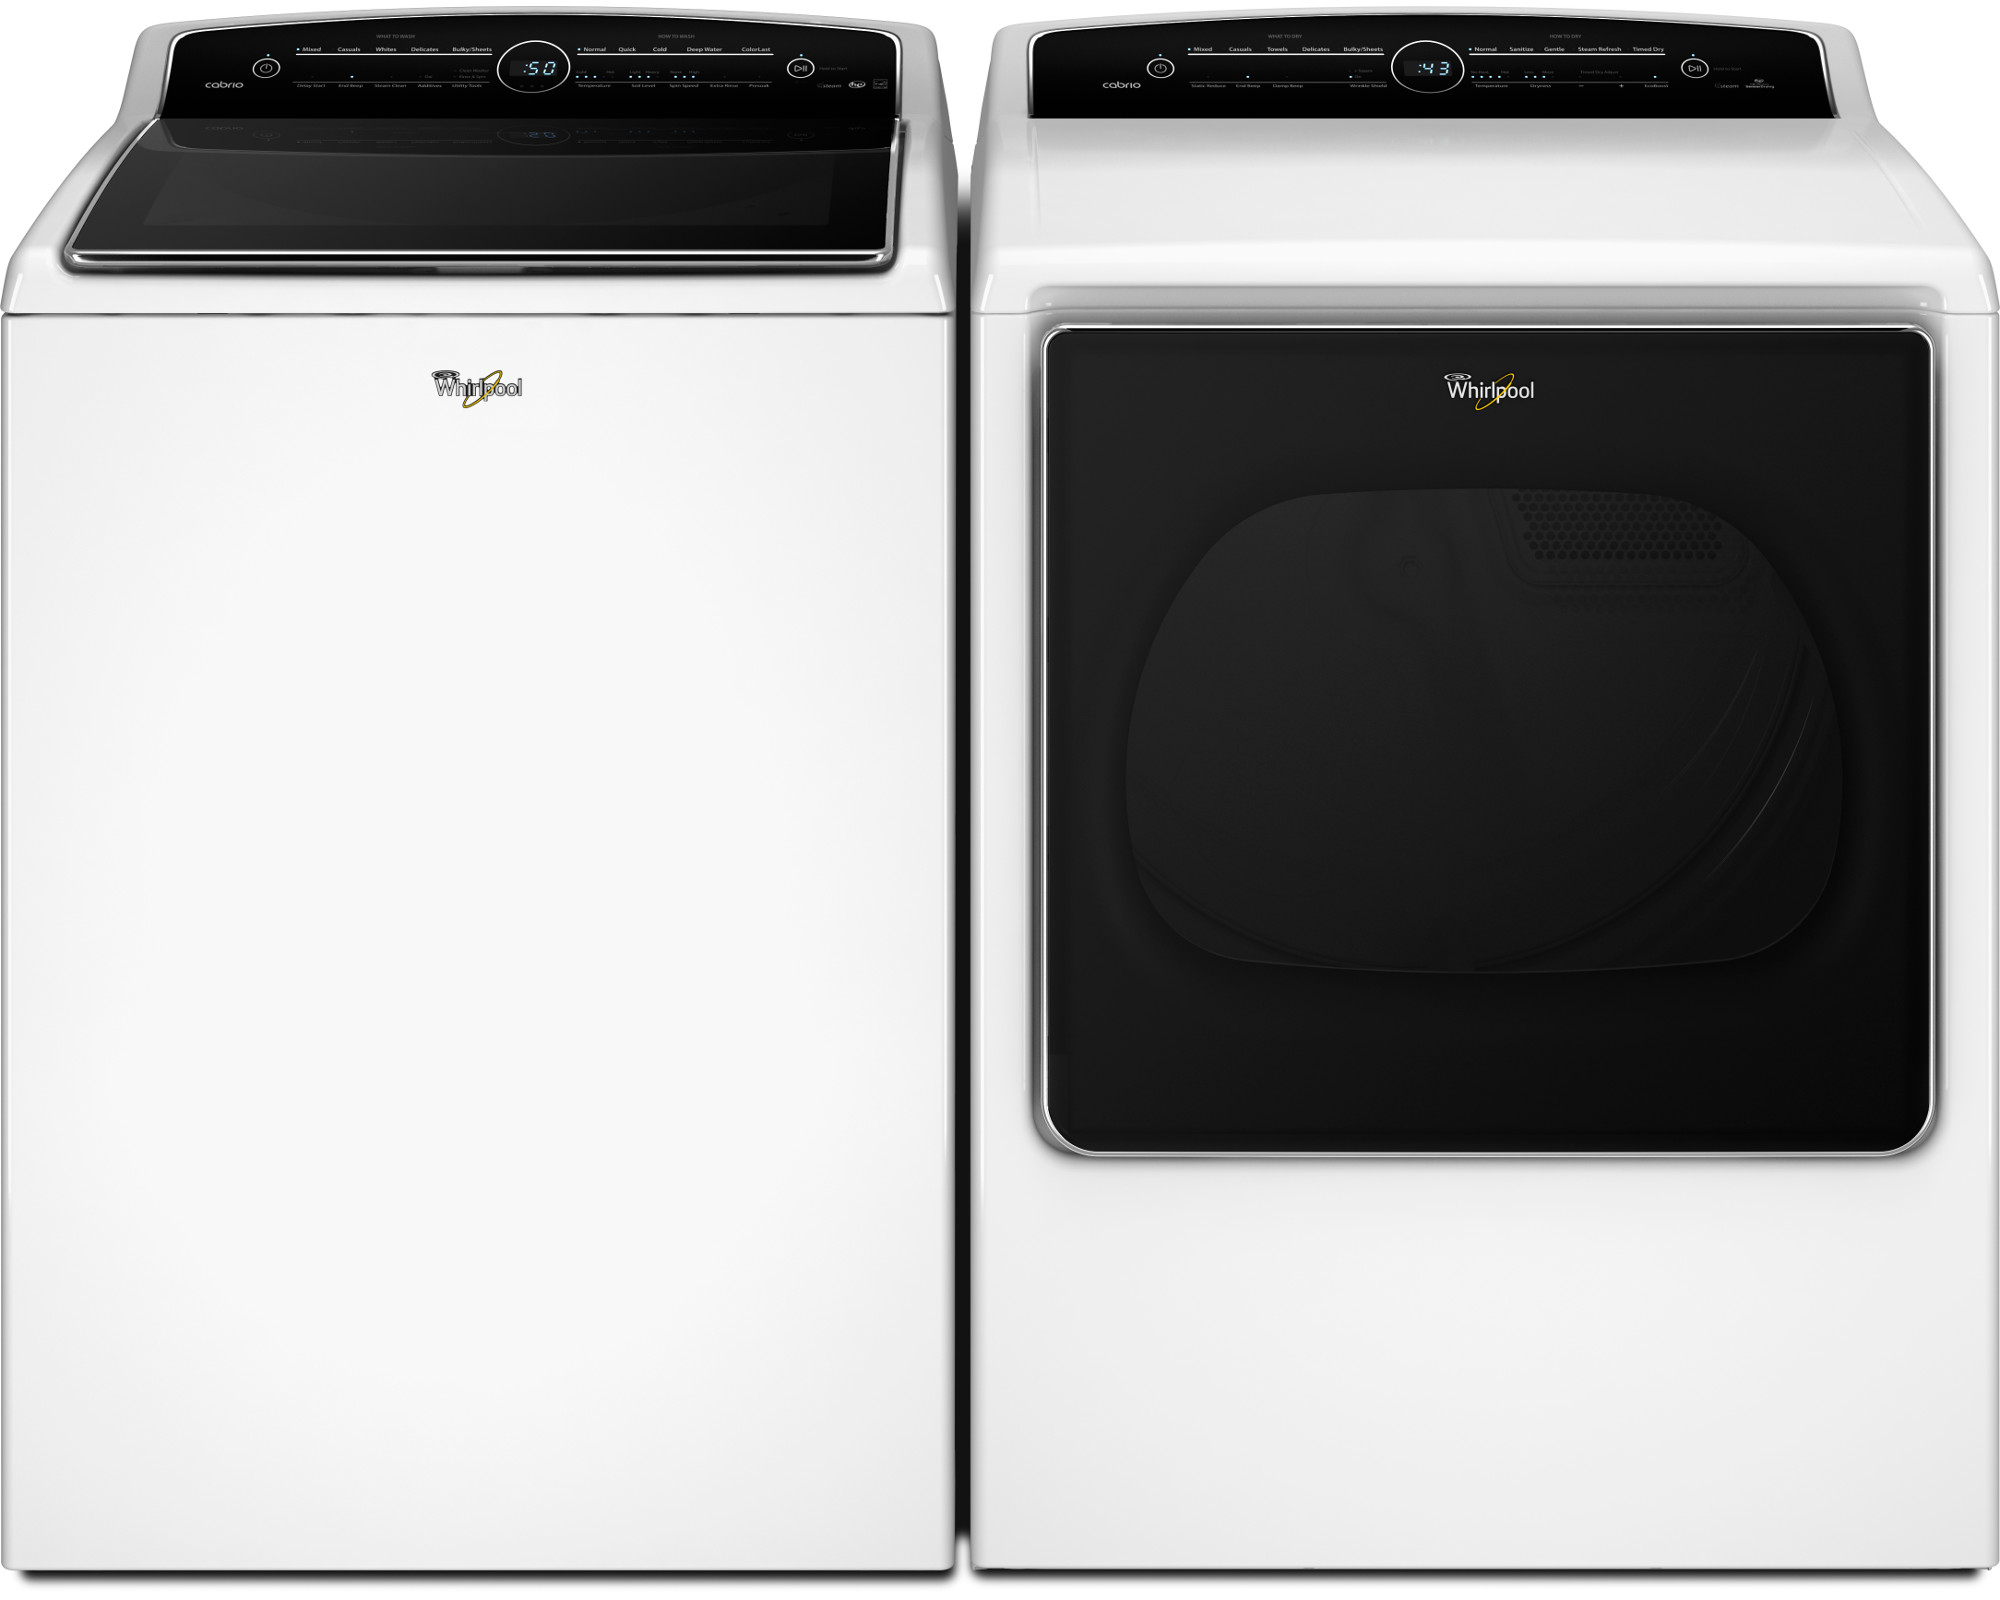 Whirlpool WED8500DW 8.8 cu. ft. Cabrio® High-Efficiency Electric Steam Dryer - White